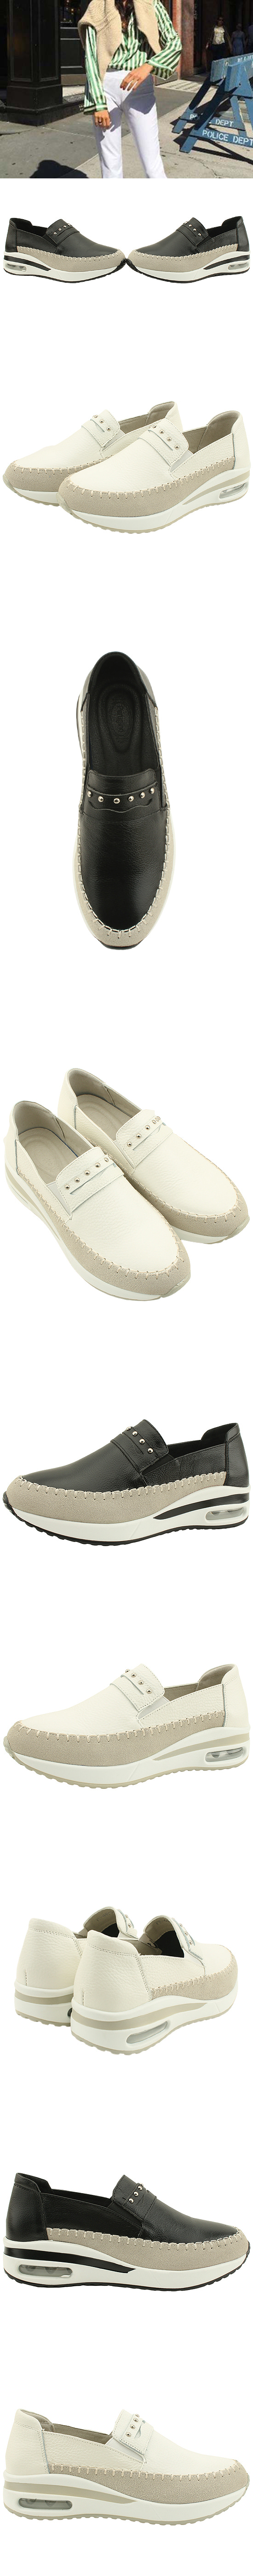 Cowhide Stud Loafers Sneakers White